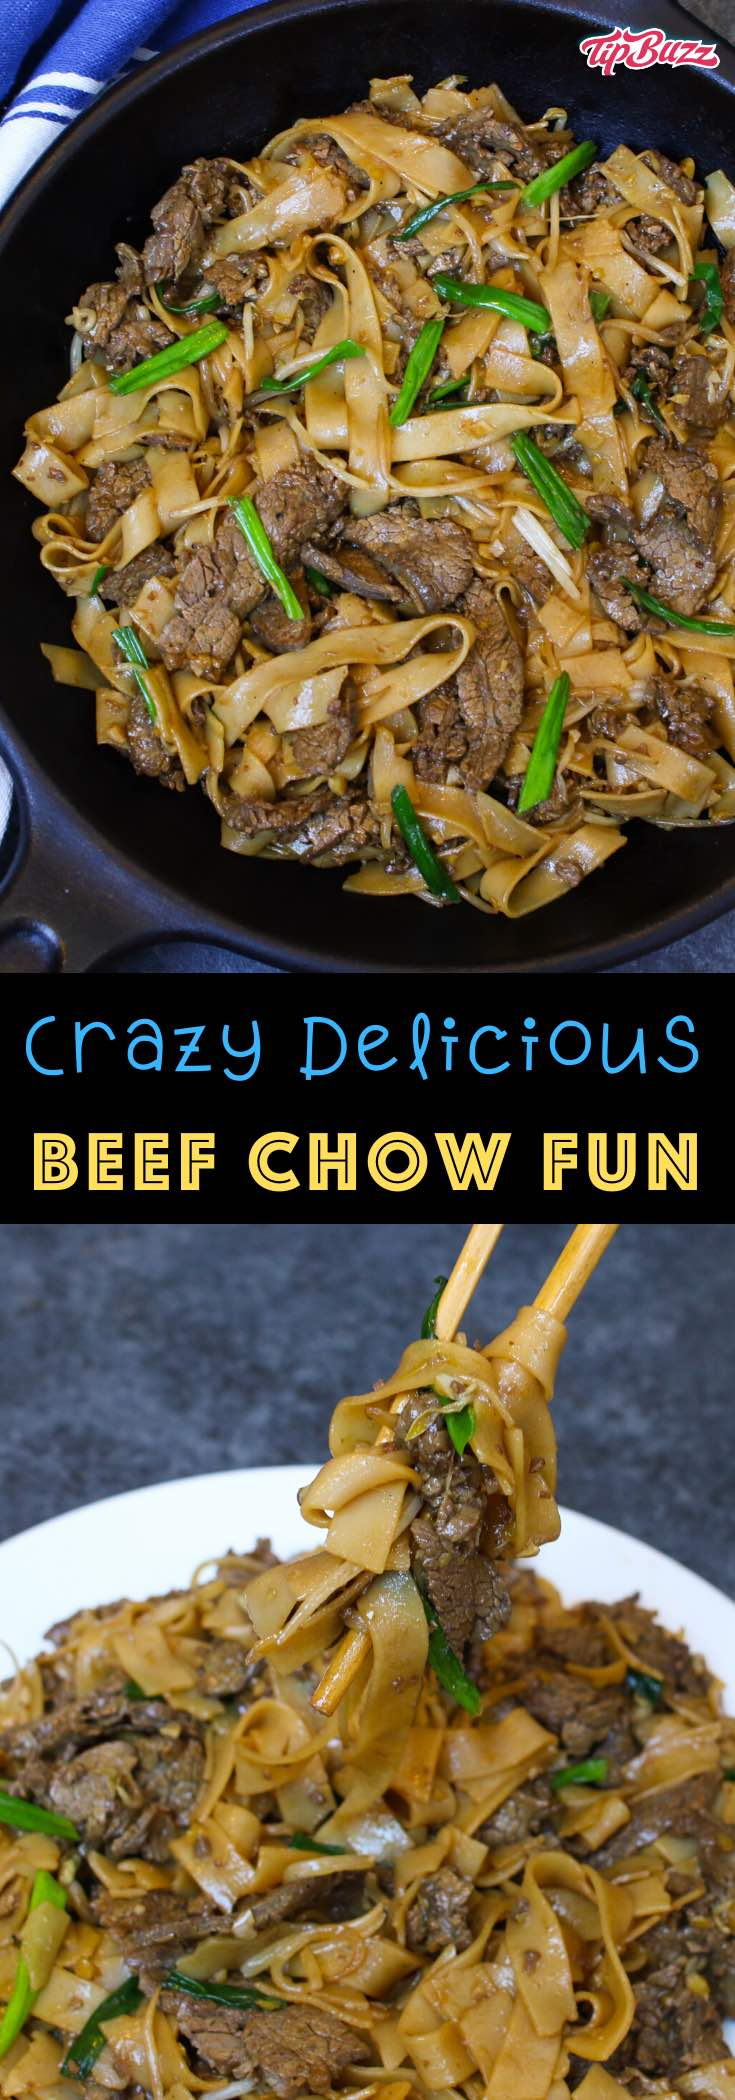 This Beef Chow Fun is surprisingly easy to make at home in under 30 minutes. It's loaded with extra-wide ho fun rice noodles, tender beef slices and flavorful vegetables. Then it's all tossed in a delicious homemade chow fun sauce that tastes like it came from your favorite Chinese restaurant!